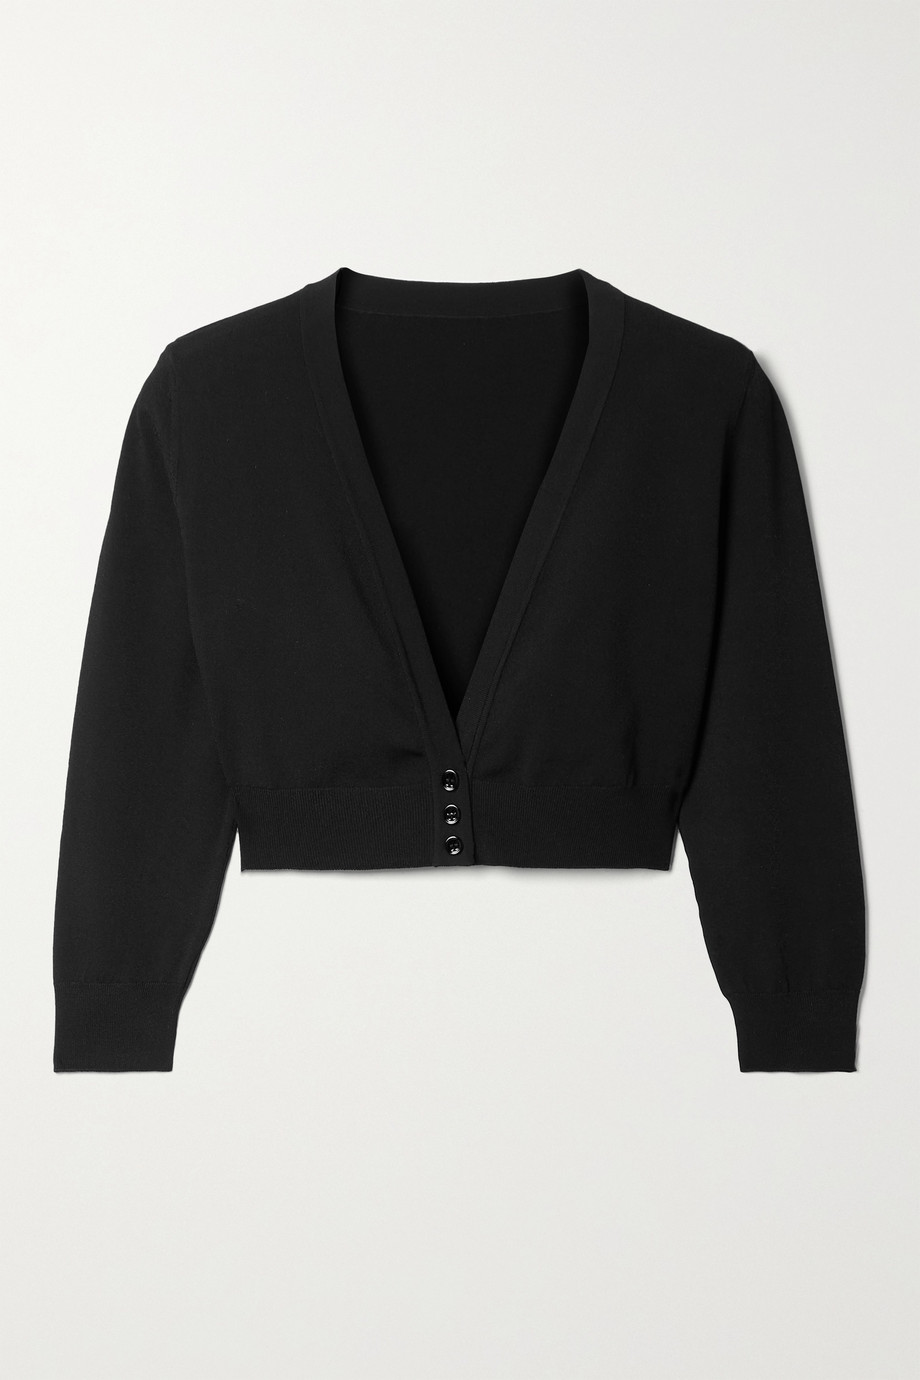 Alaïa Cropped knitted cardigan